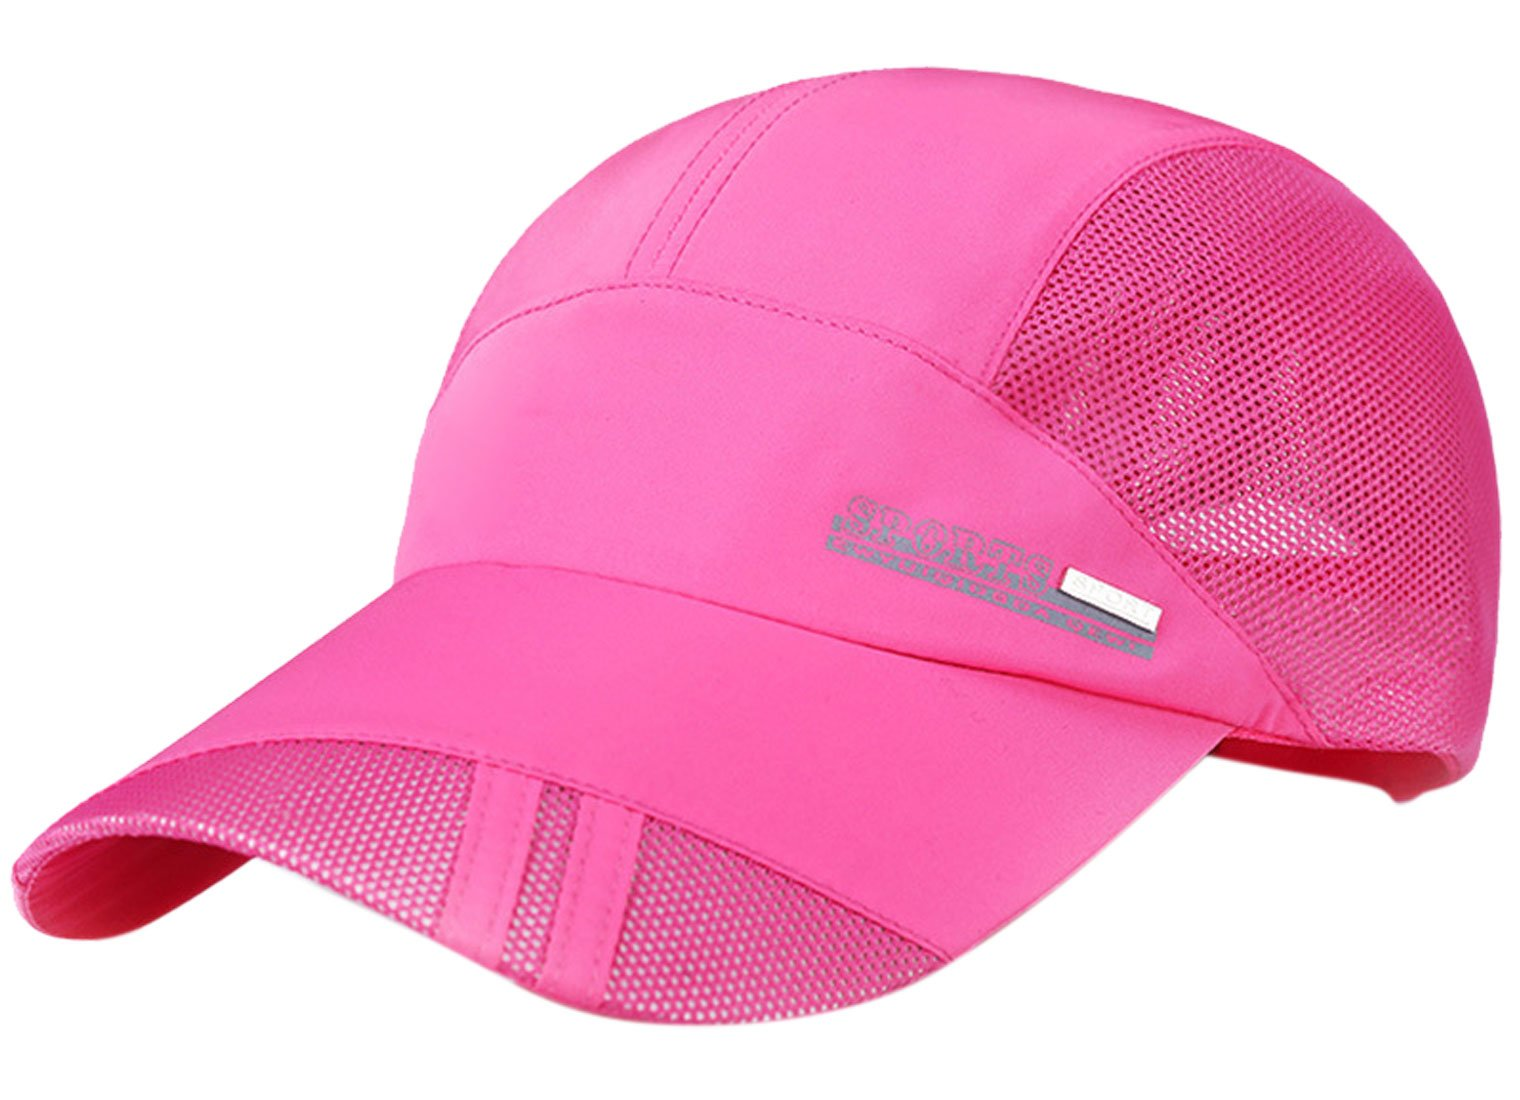 Panegy Unisex Adults Nylon Sun Protection Hat Mesh Cotton Cap for Fishing Hiking Rose Pink by Panegy (Image #1)